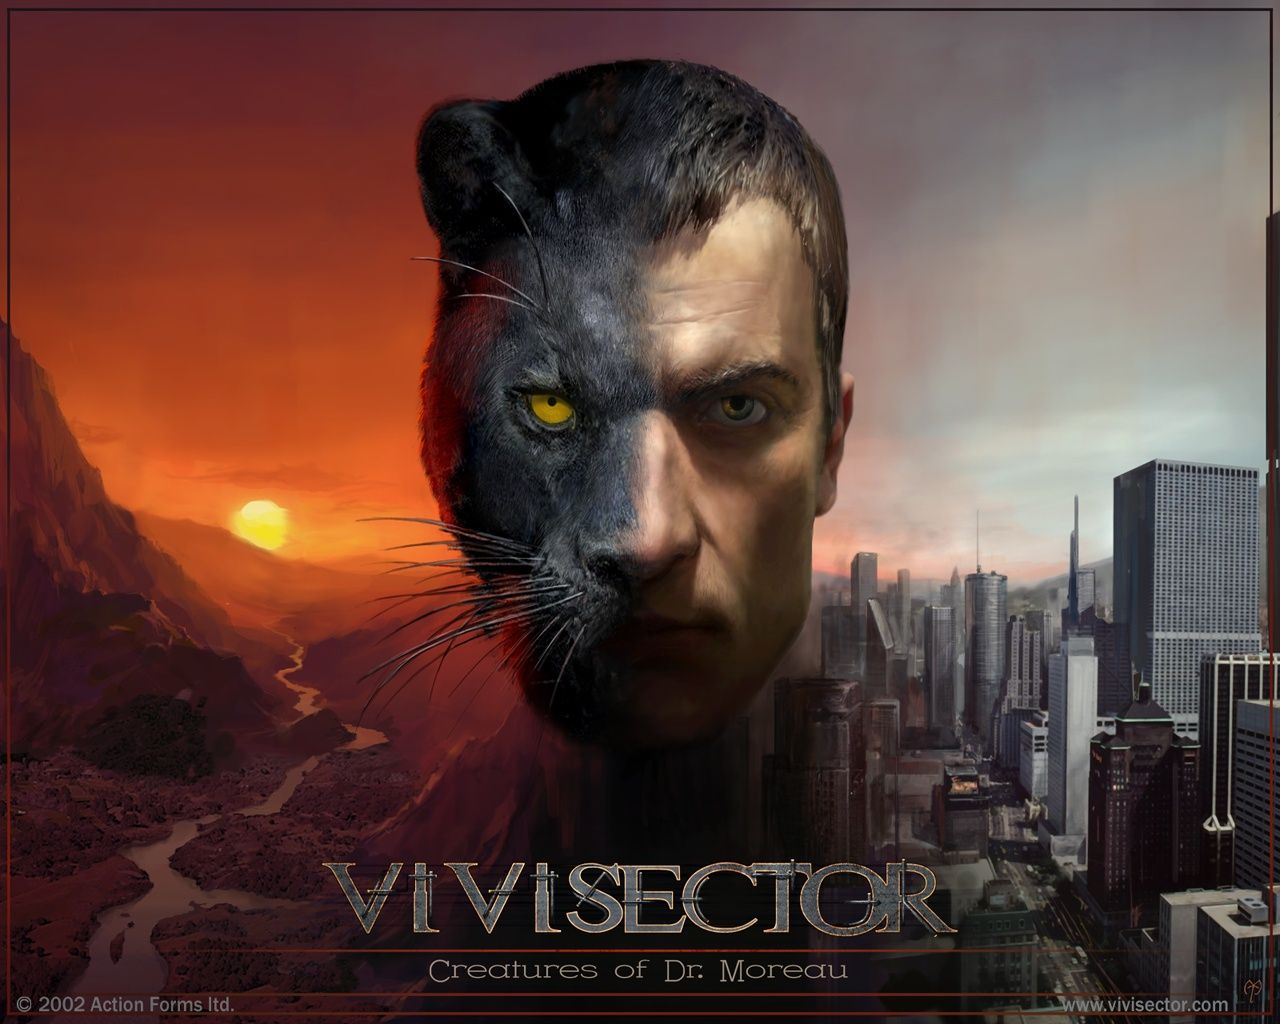 vivisector beast within: